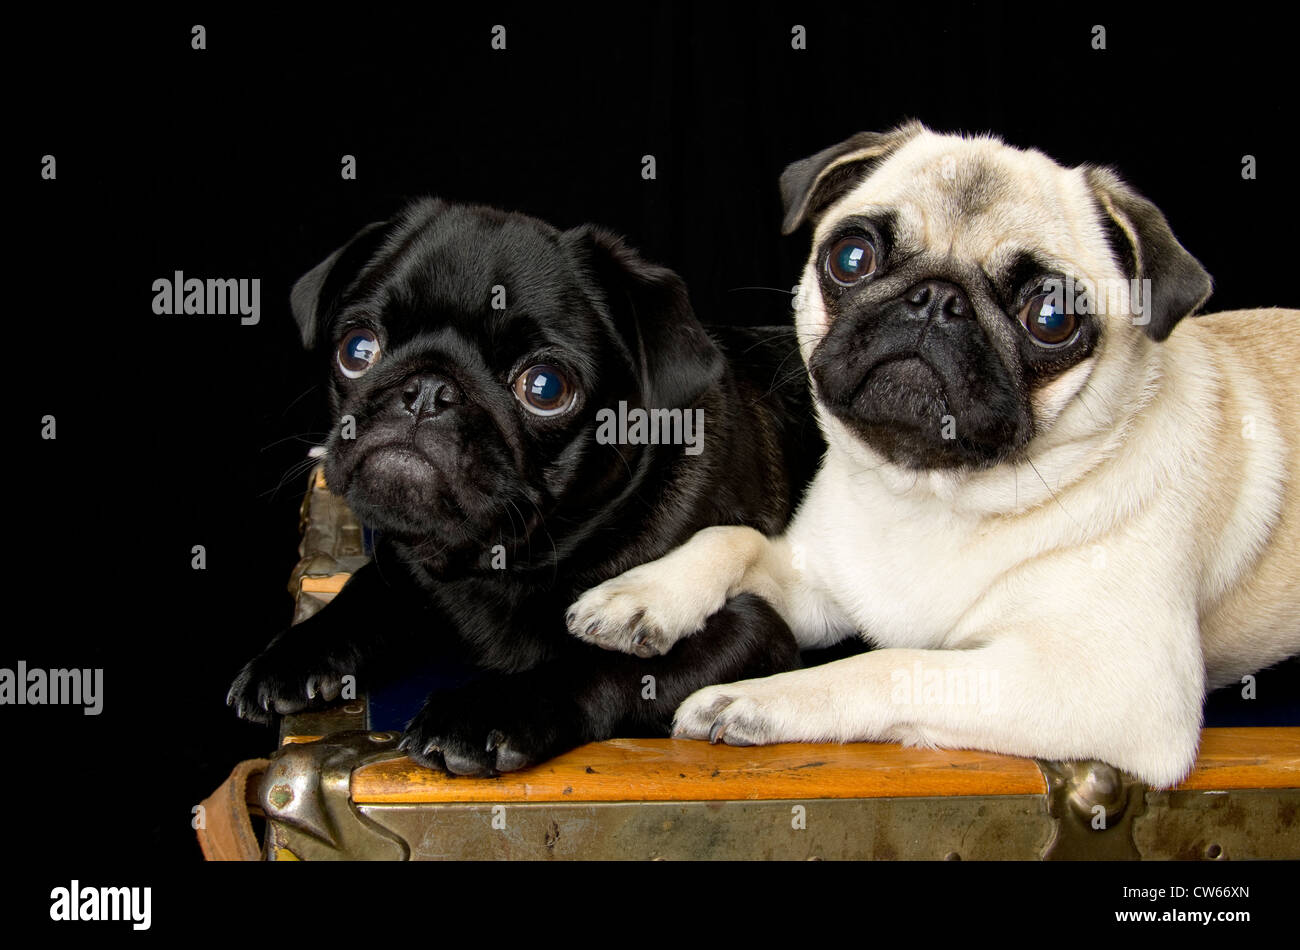 A 6 month old black pug puppy sitting with a 1.5 year old fawn pug. The older dog has her paw on the shoulder of - Stock Image